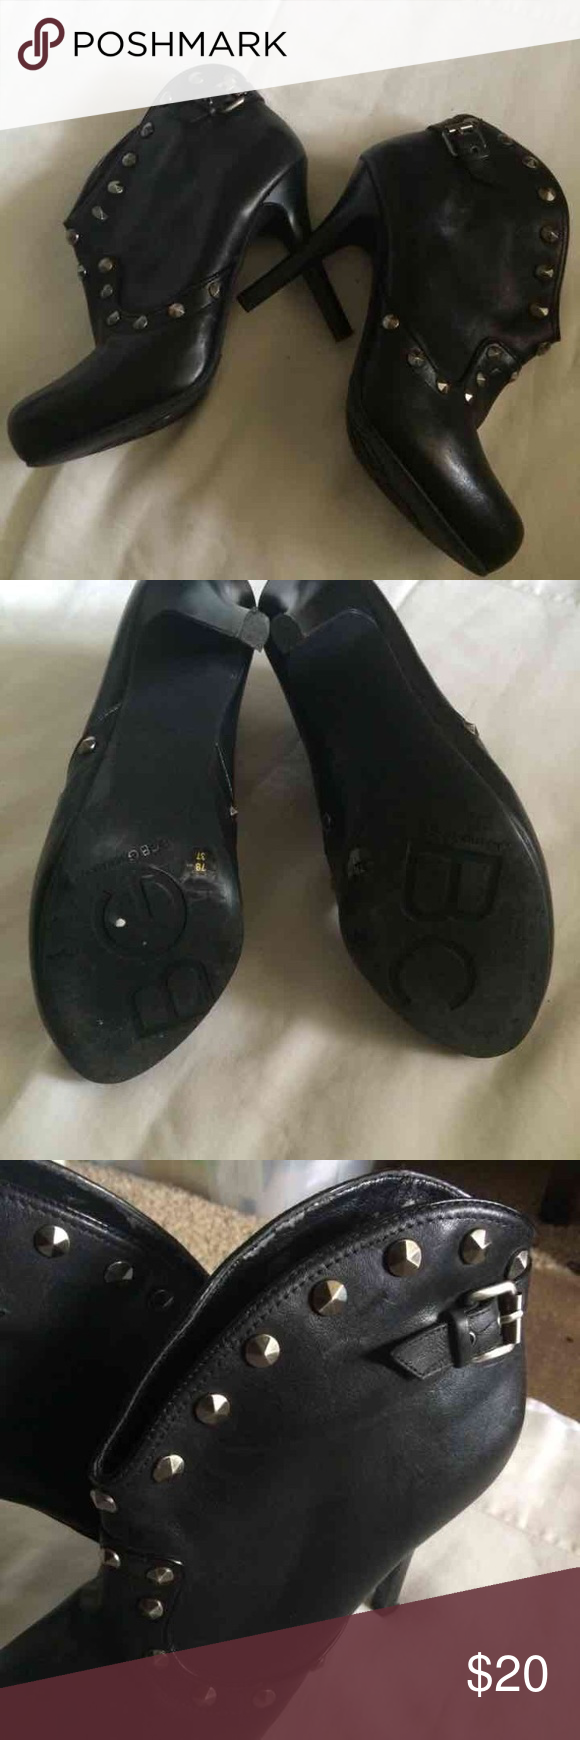 """BCBGeneration Booties. Beautiful Black W/Silver Studded BCBGeneration Booties.                                                                   Size: 7B.                                                                   Heel measures Appx, 4 1/2"""".                                      Minor wear in the inside. BCBGeneration Shoes Ankle Boots & Booties"""